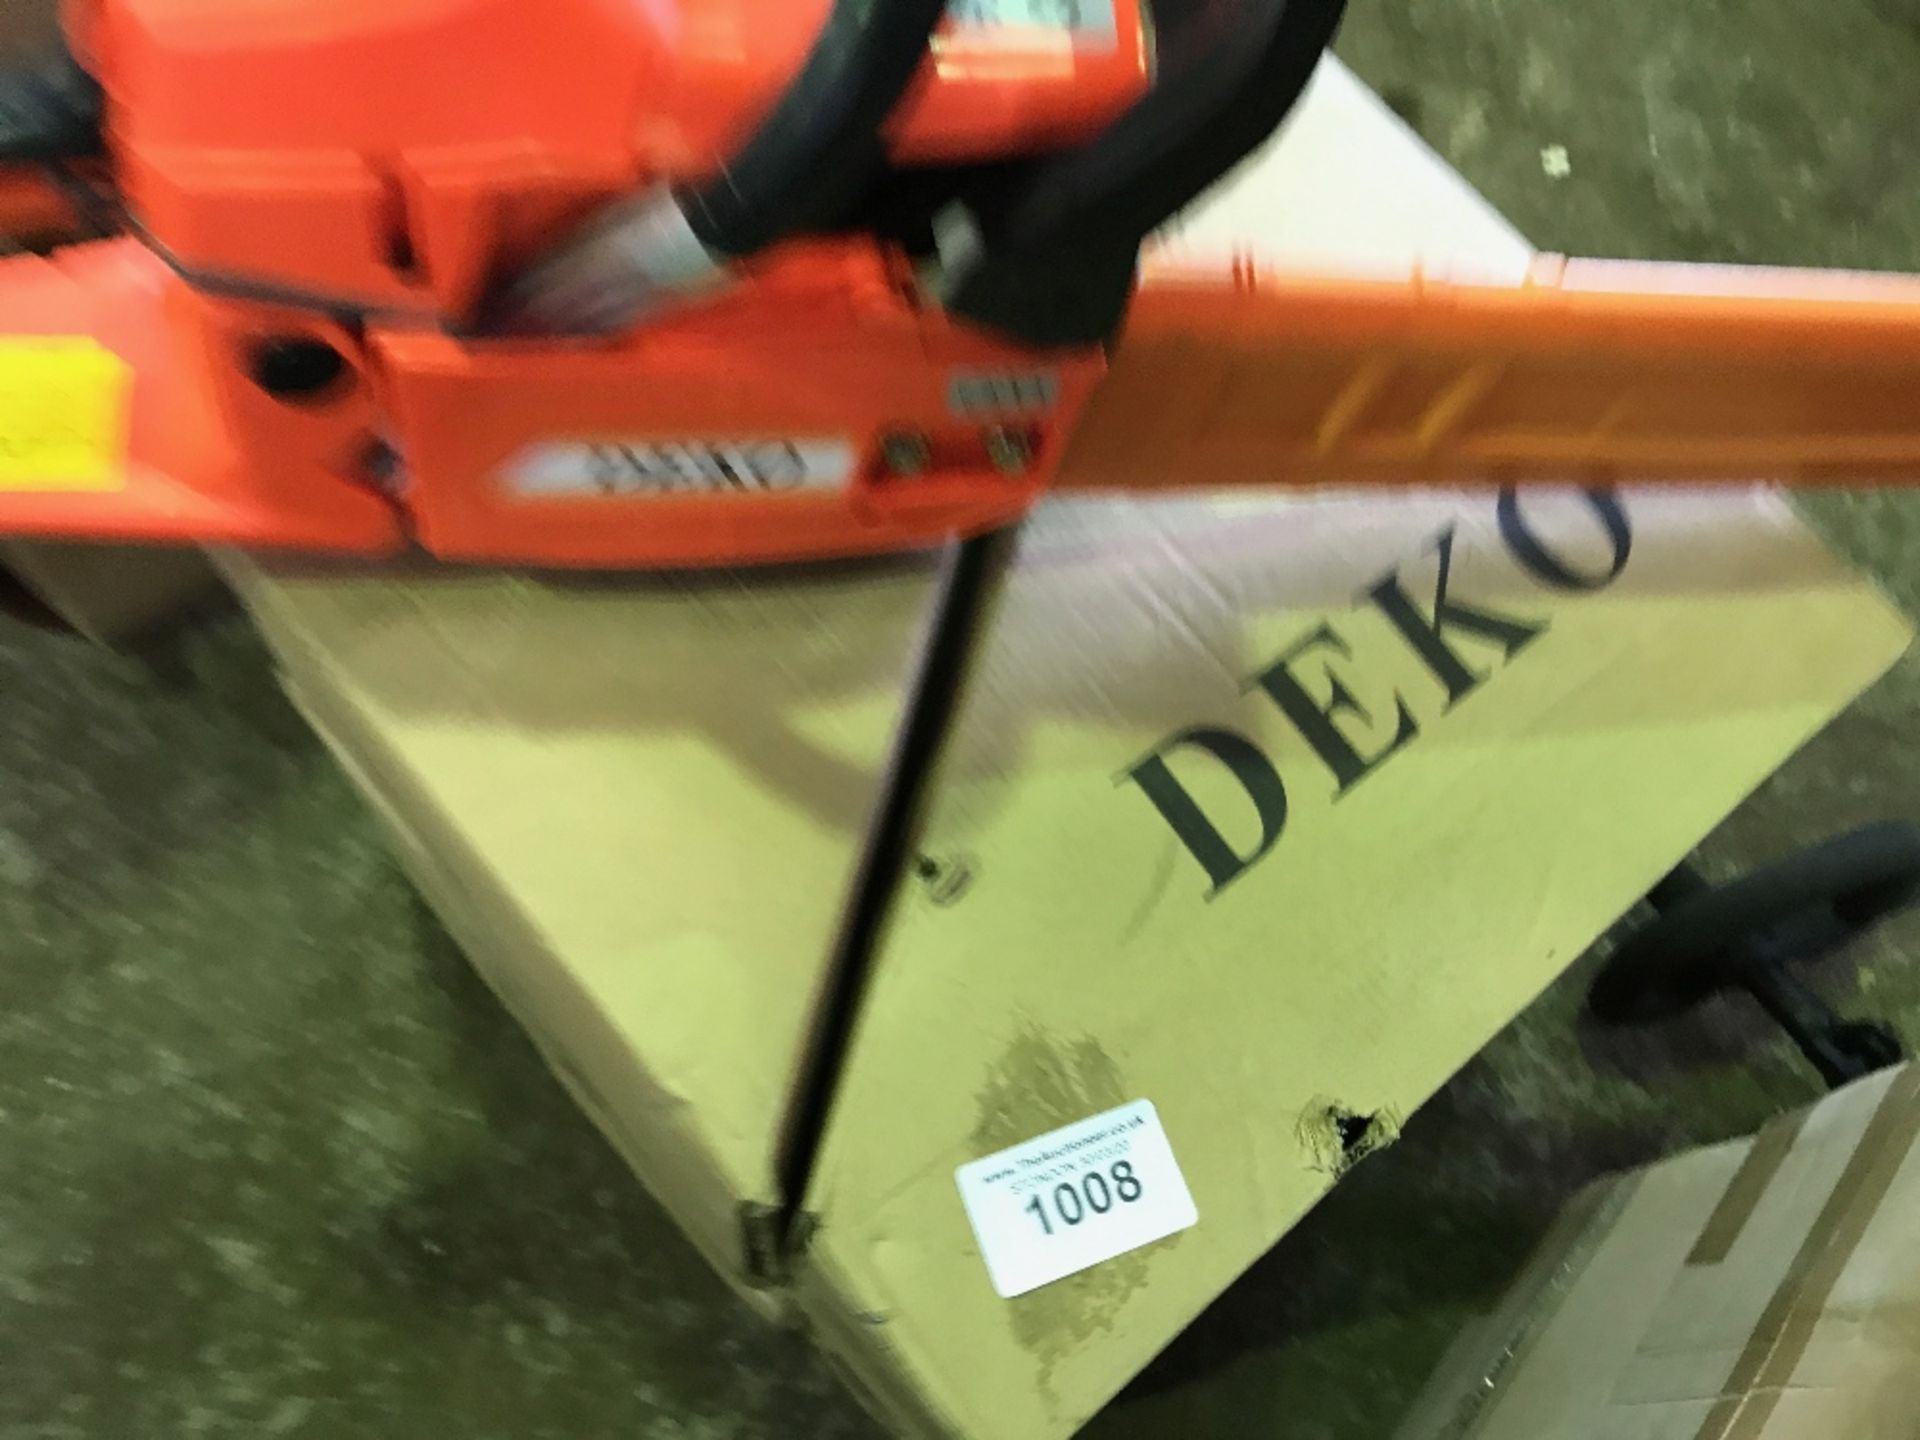 Lot 1008 - 4no. Deko petrol engined chainsaws, boxed